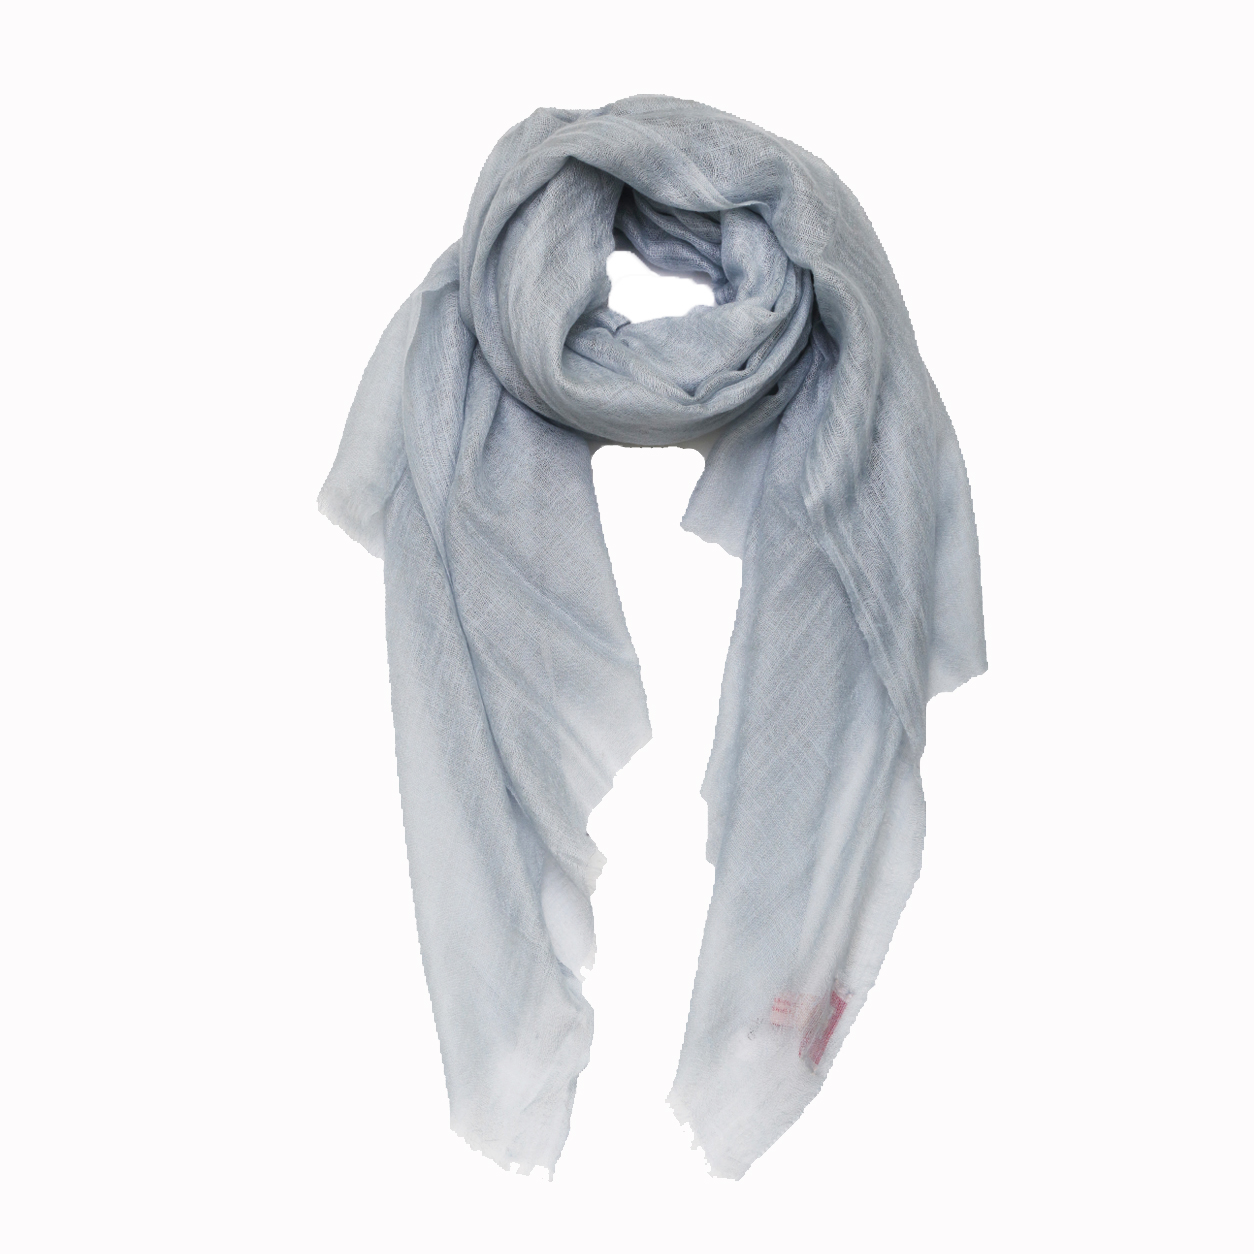 Sheer Pashmina Scarf - Sky Light